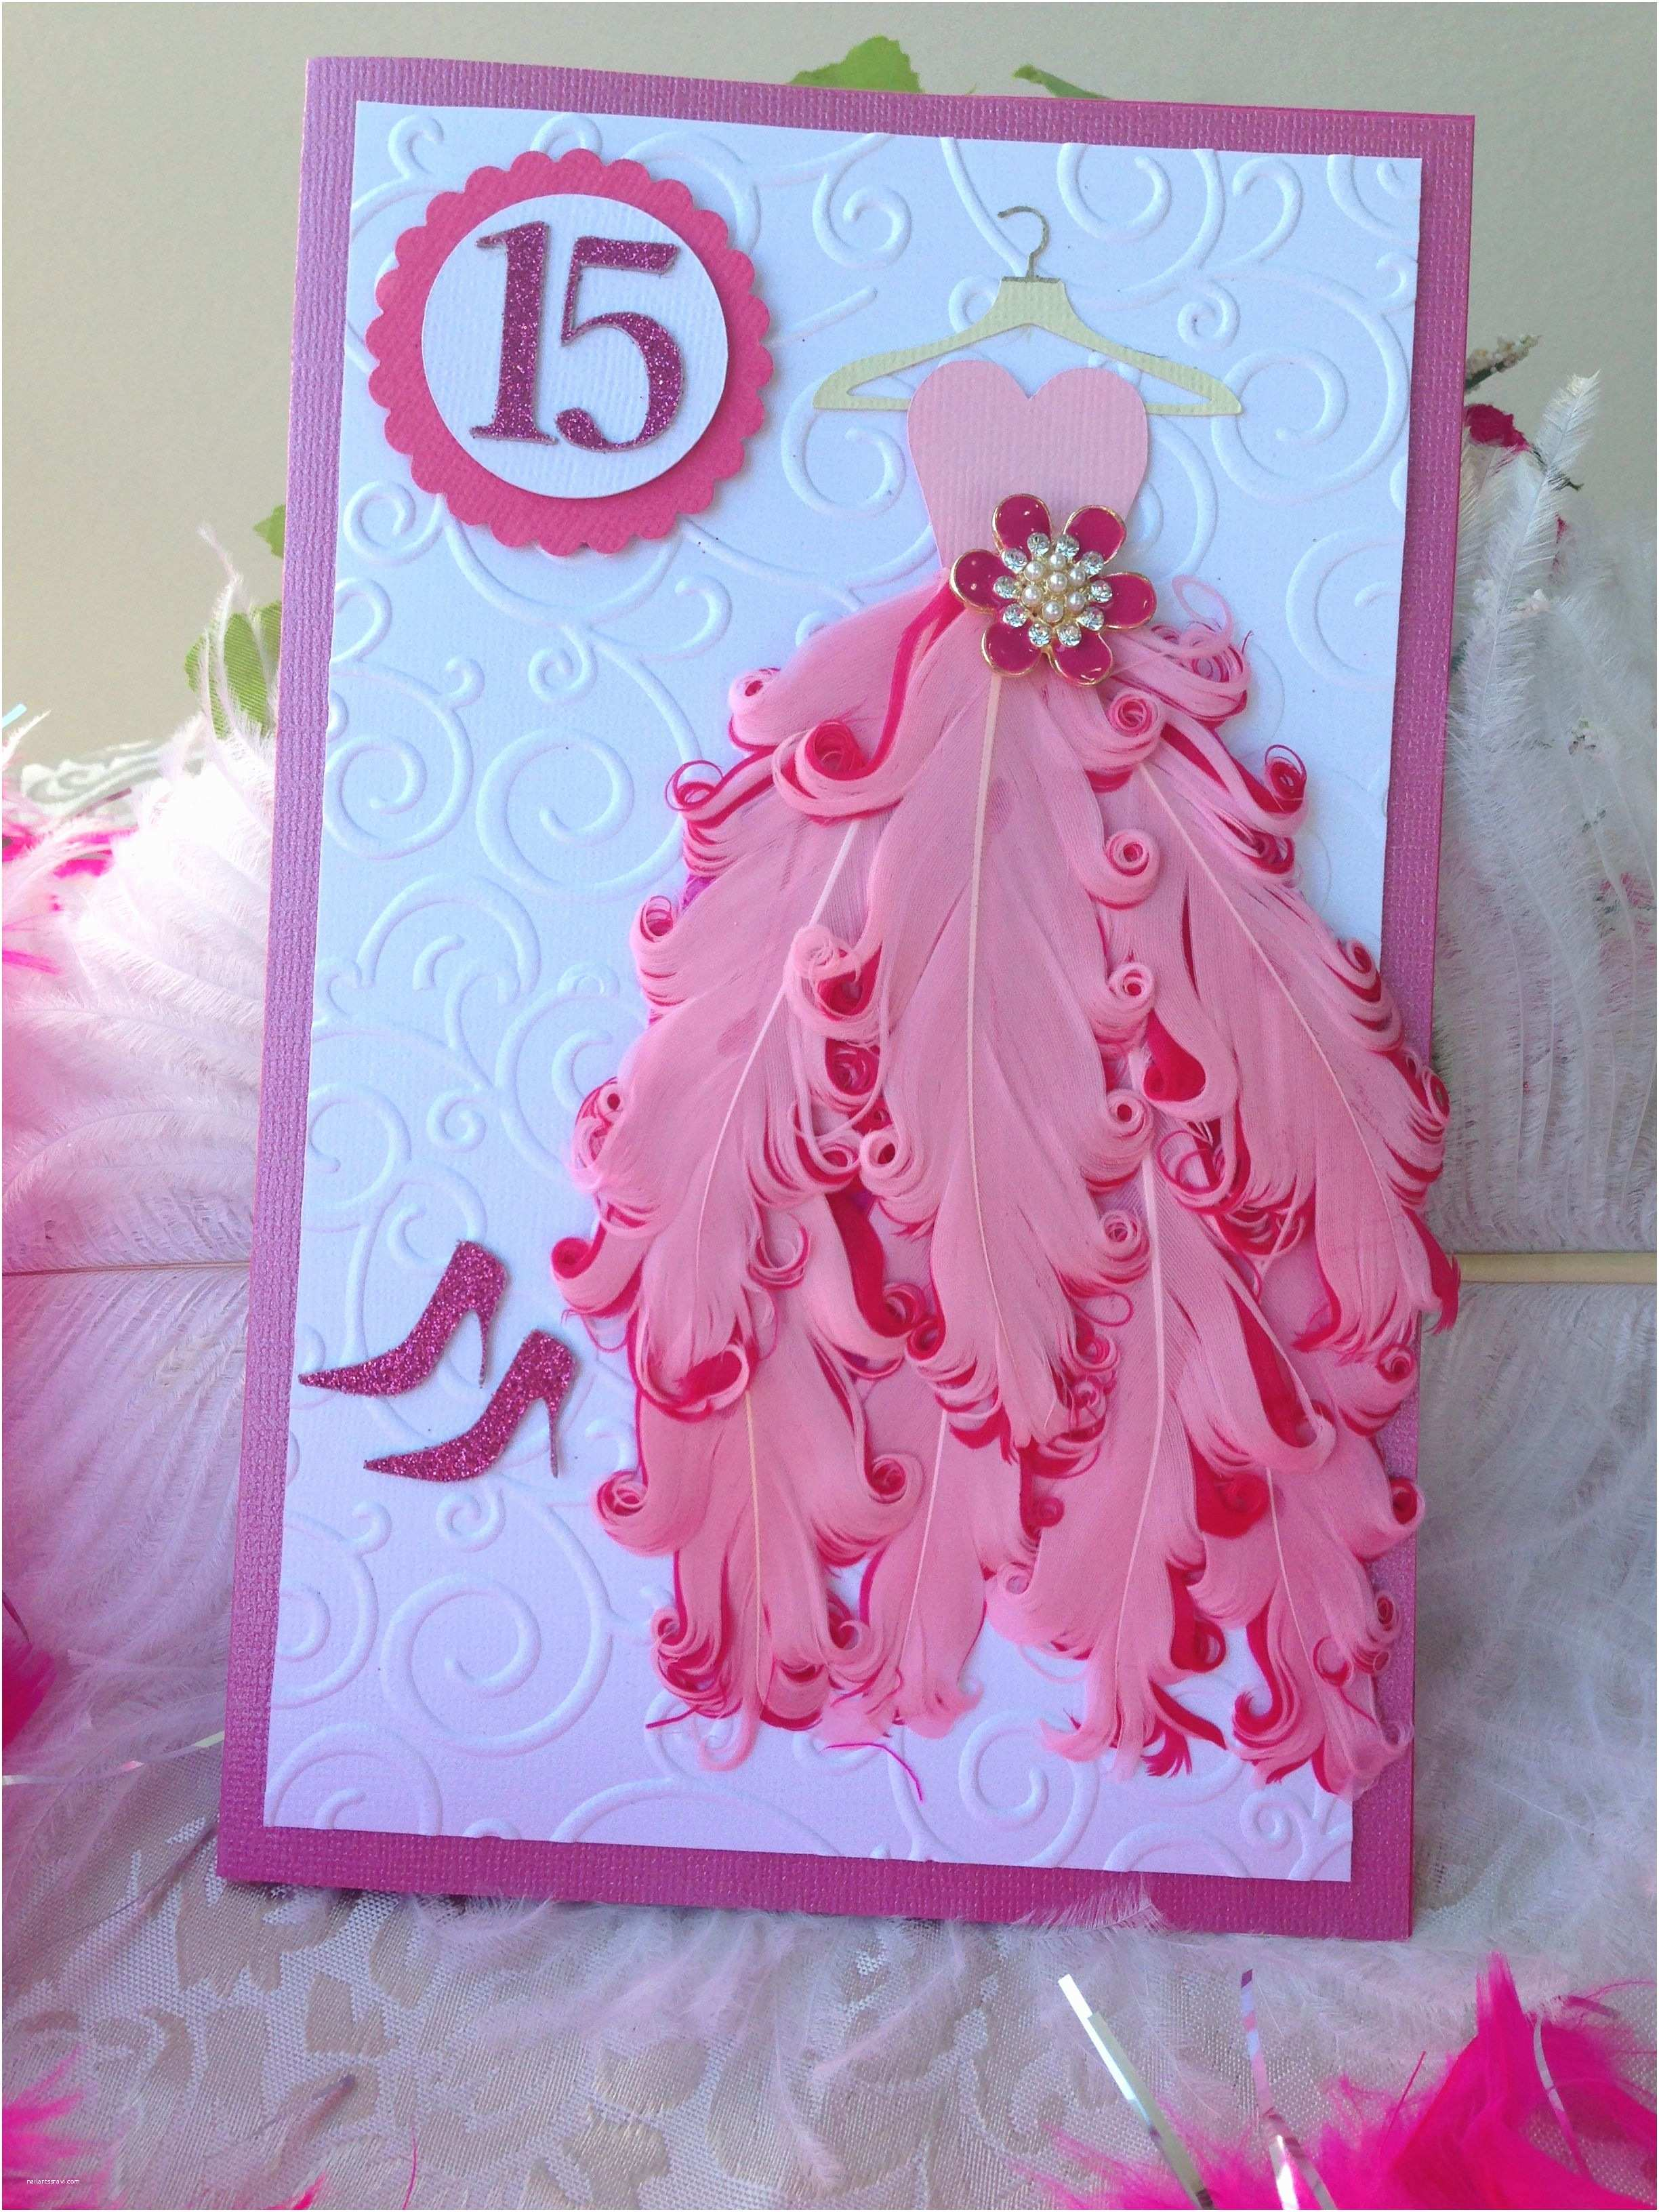 Diy Quinceanera Invitations Gorgeous Quinceañera Handmade Invitation with Feathers